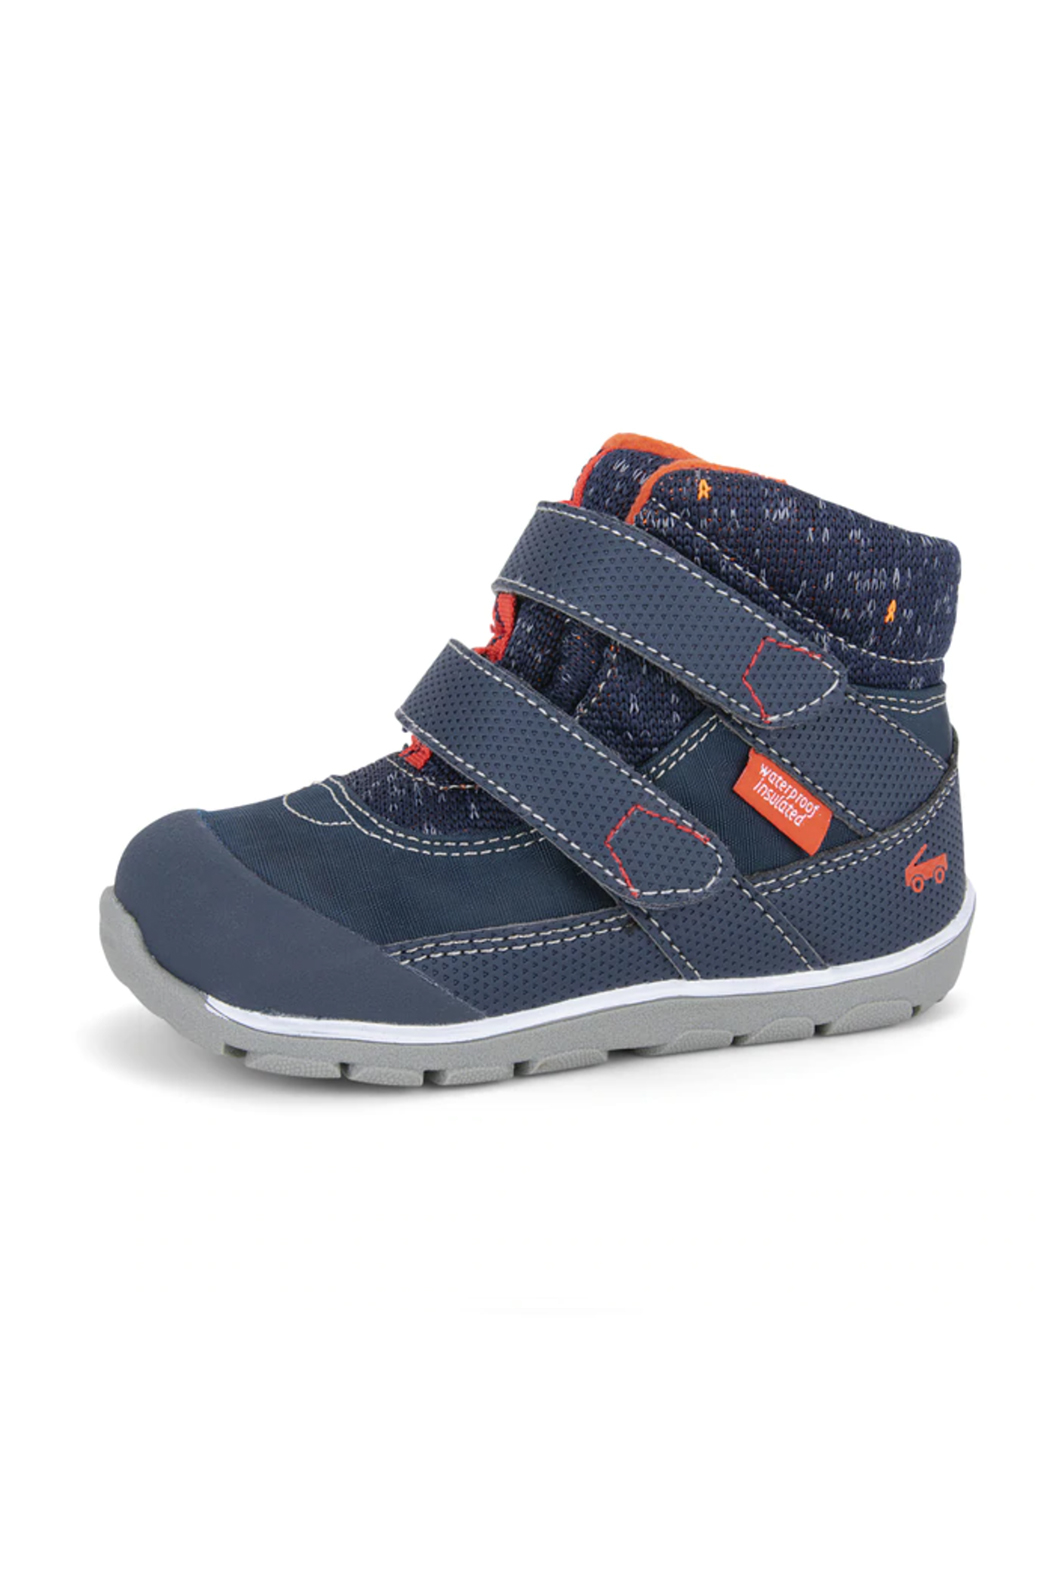 See Kai Run Atlas Waterproof Insulated Boot - Navy/Red - Front Cropped Image